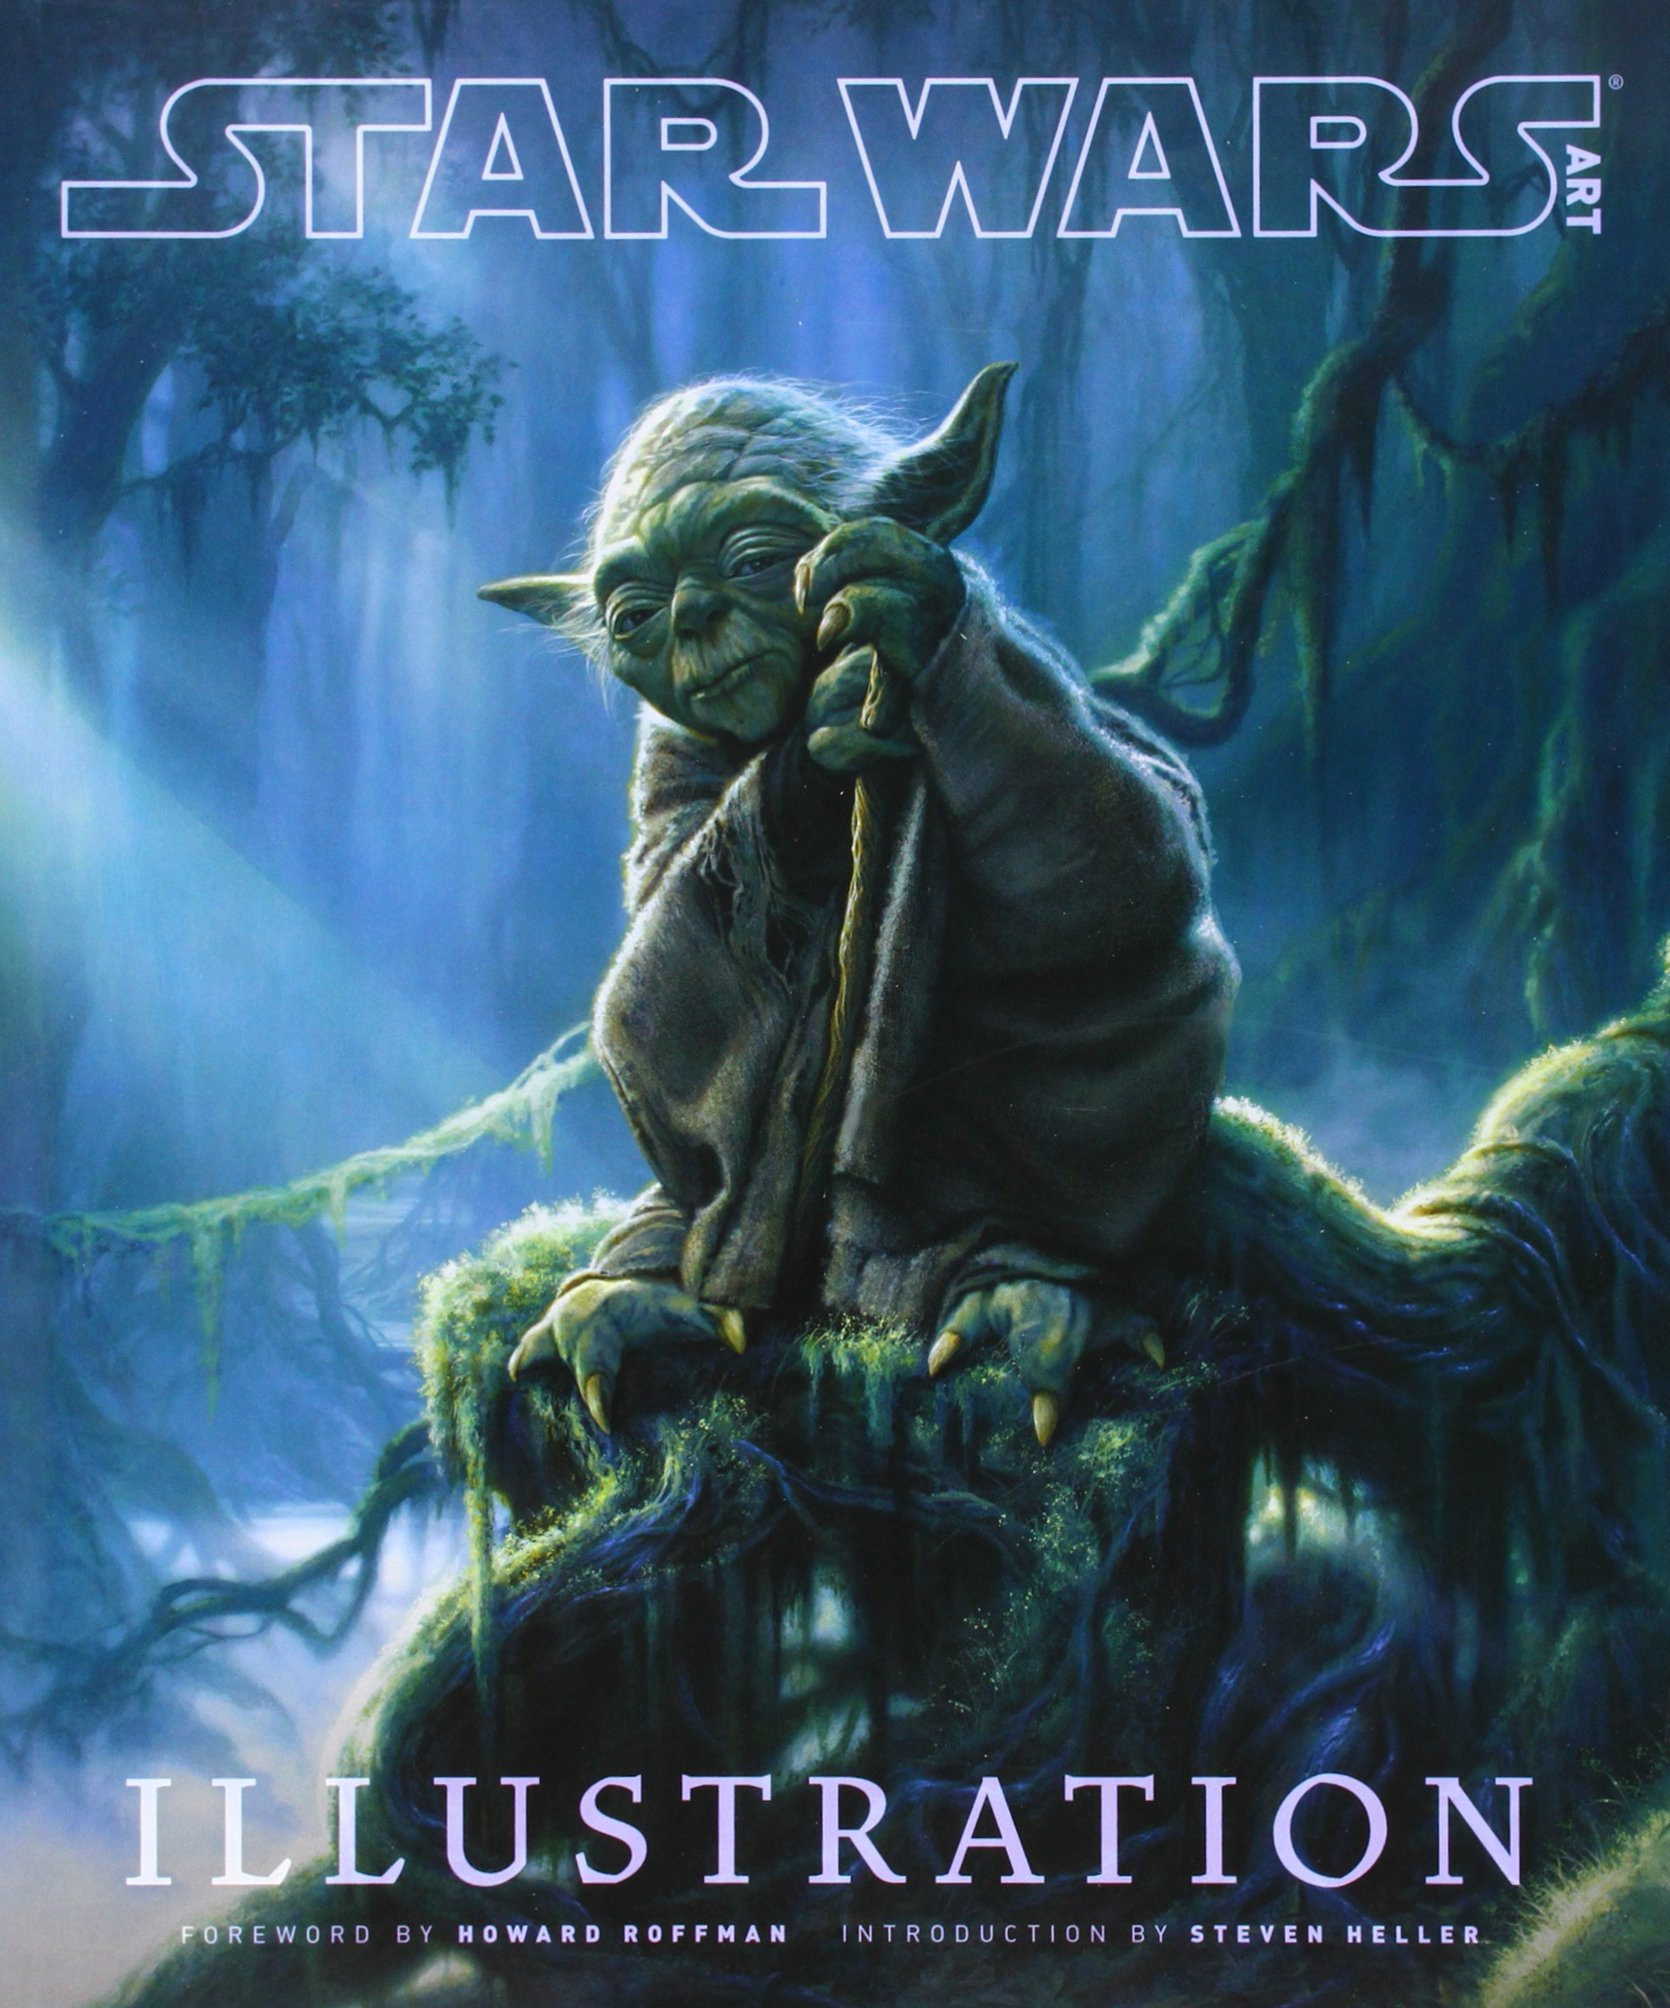 36 - Star Wars Art Illustration - Star Wars - Bog - Roman - Cover - Fiktion & Kultur - Plusbog.dk